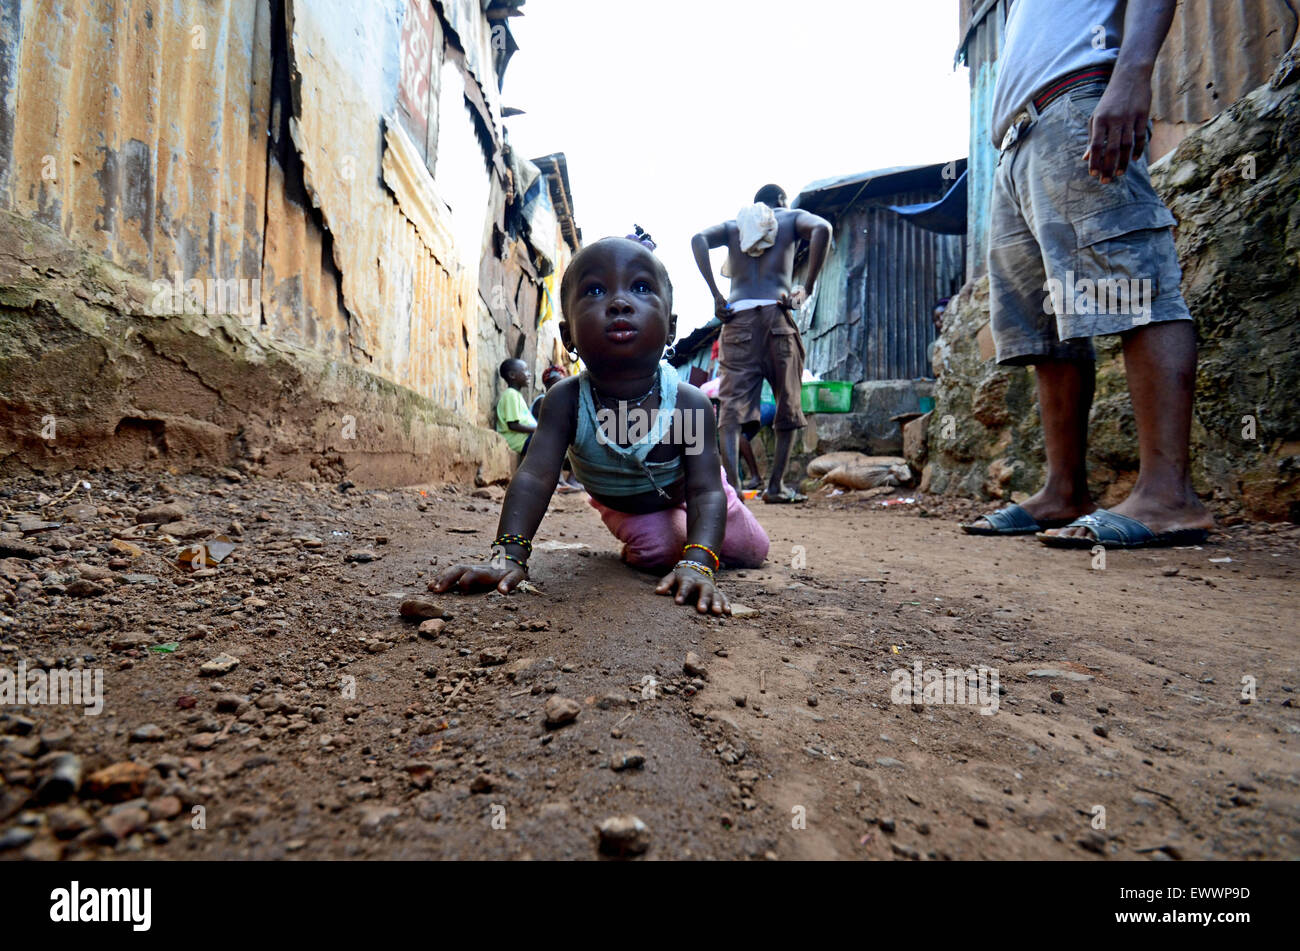 A child in Kroo Bay, Freetown, Sierra Leone - Stock Image